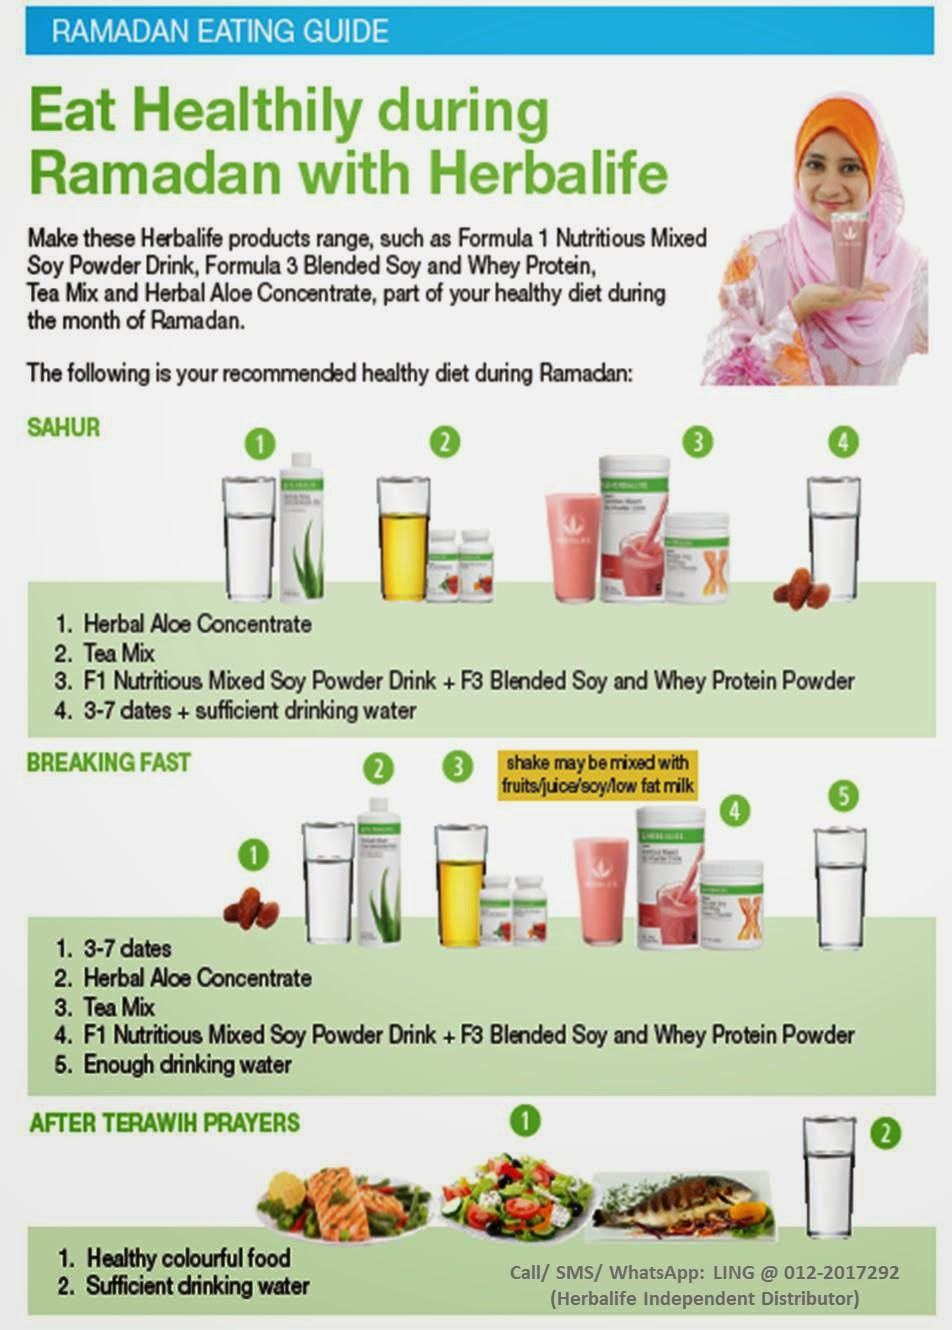 Is Herbalife Good for You?